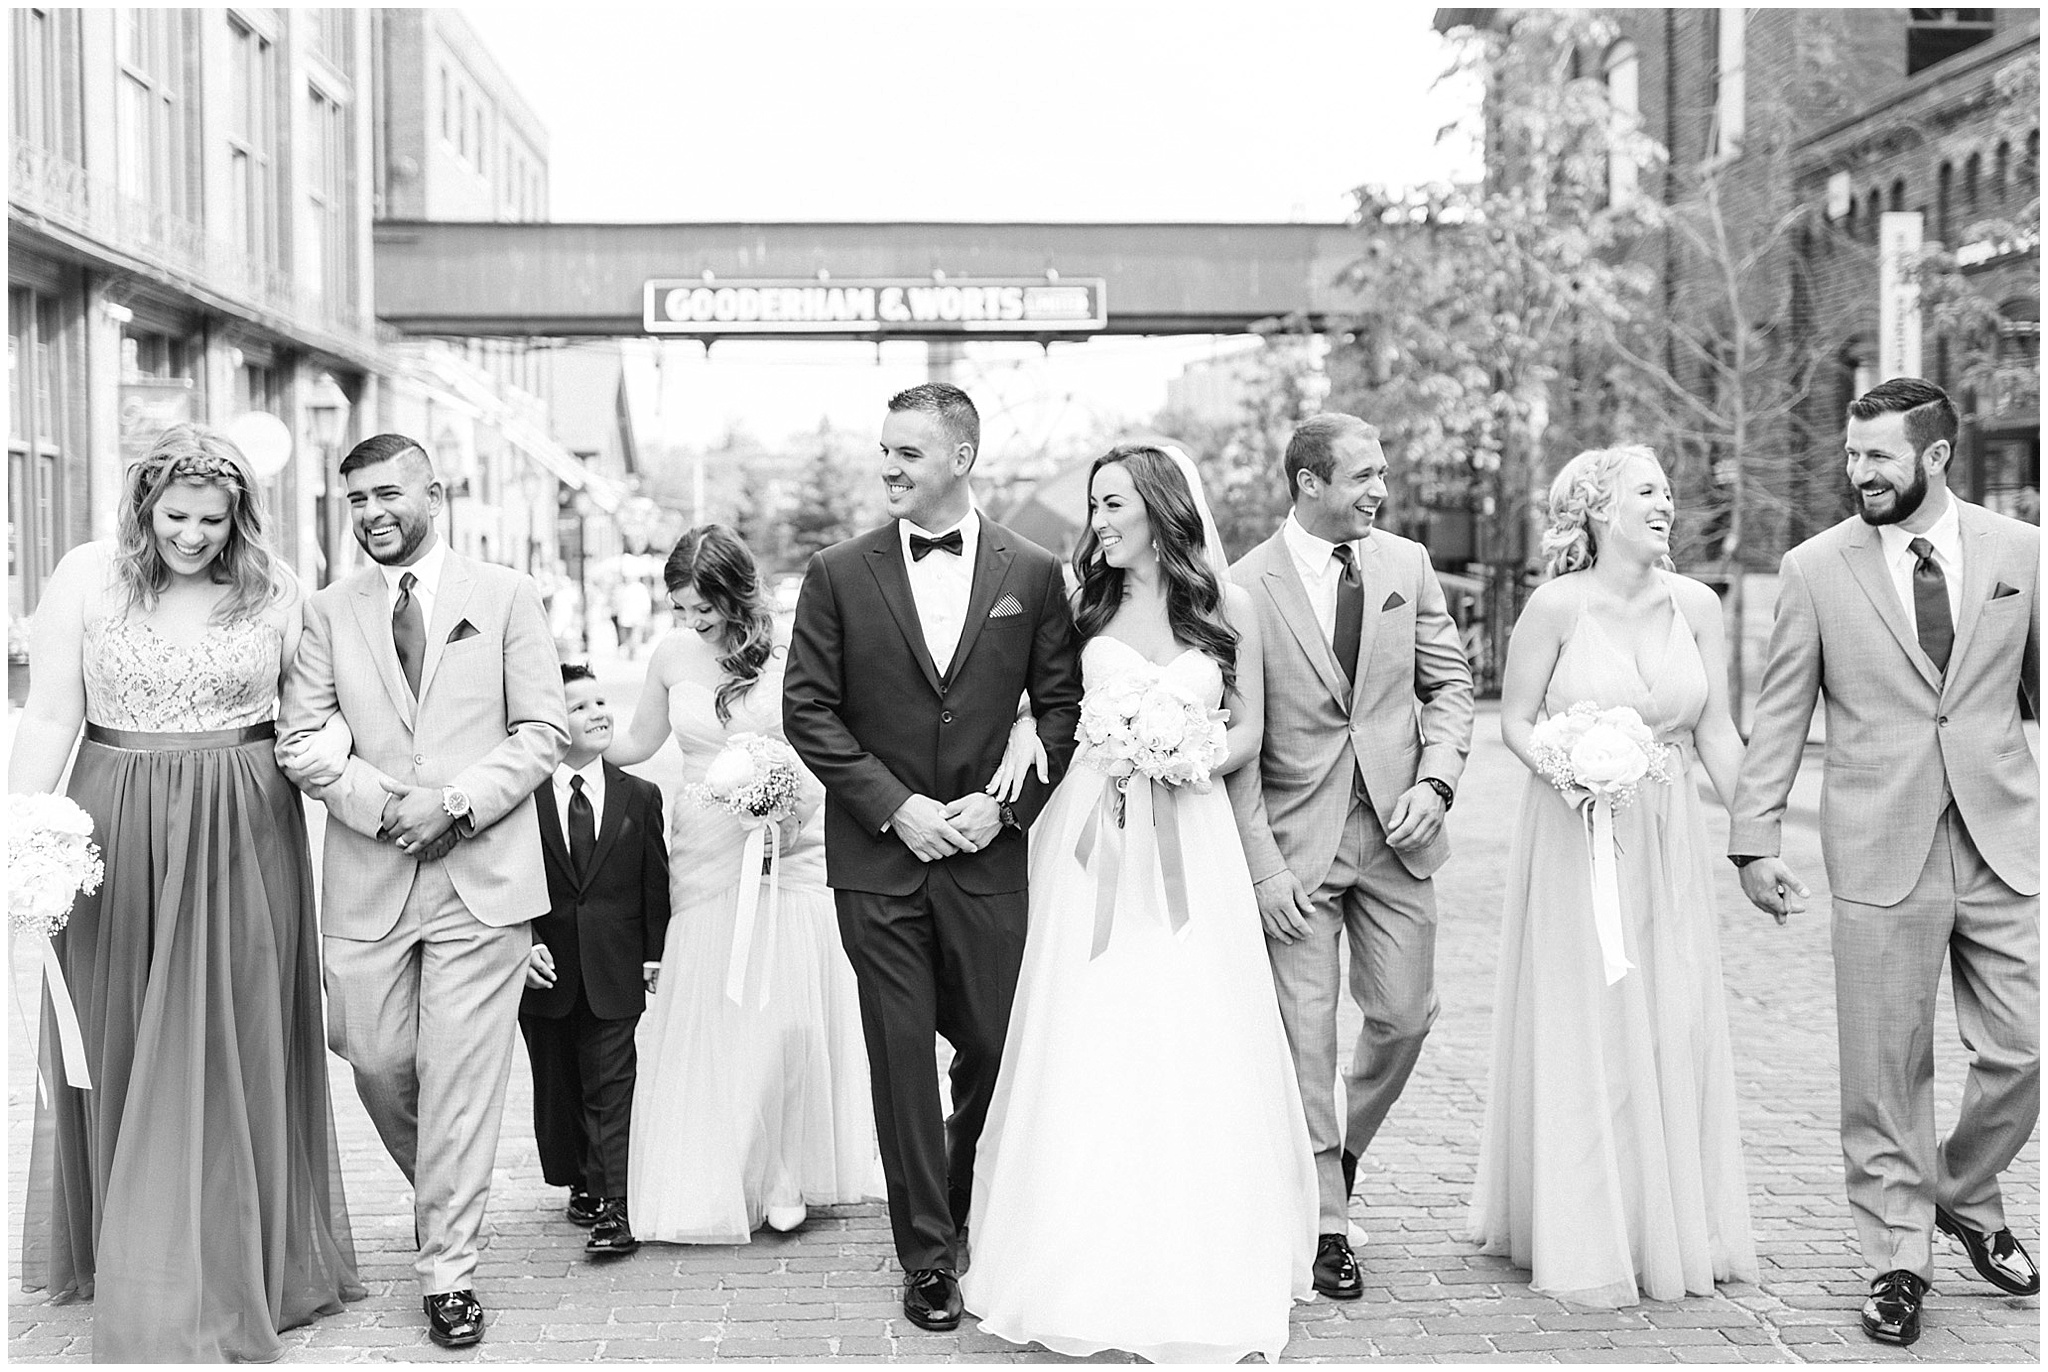 Bridal Party Photos, Distillery District wedding by Jenn Kavanagh Photography